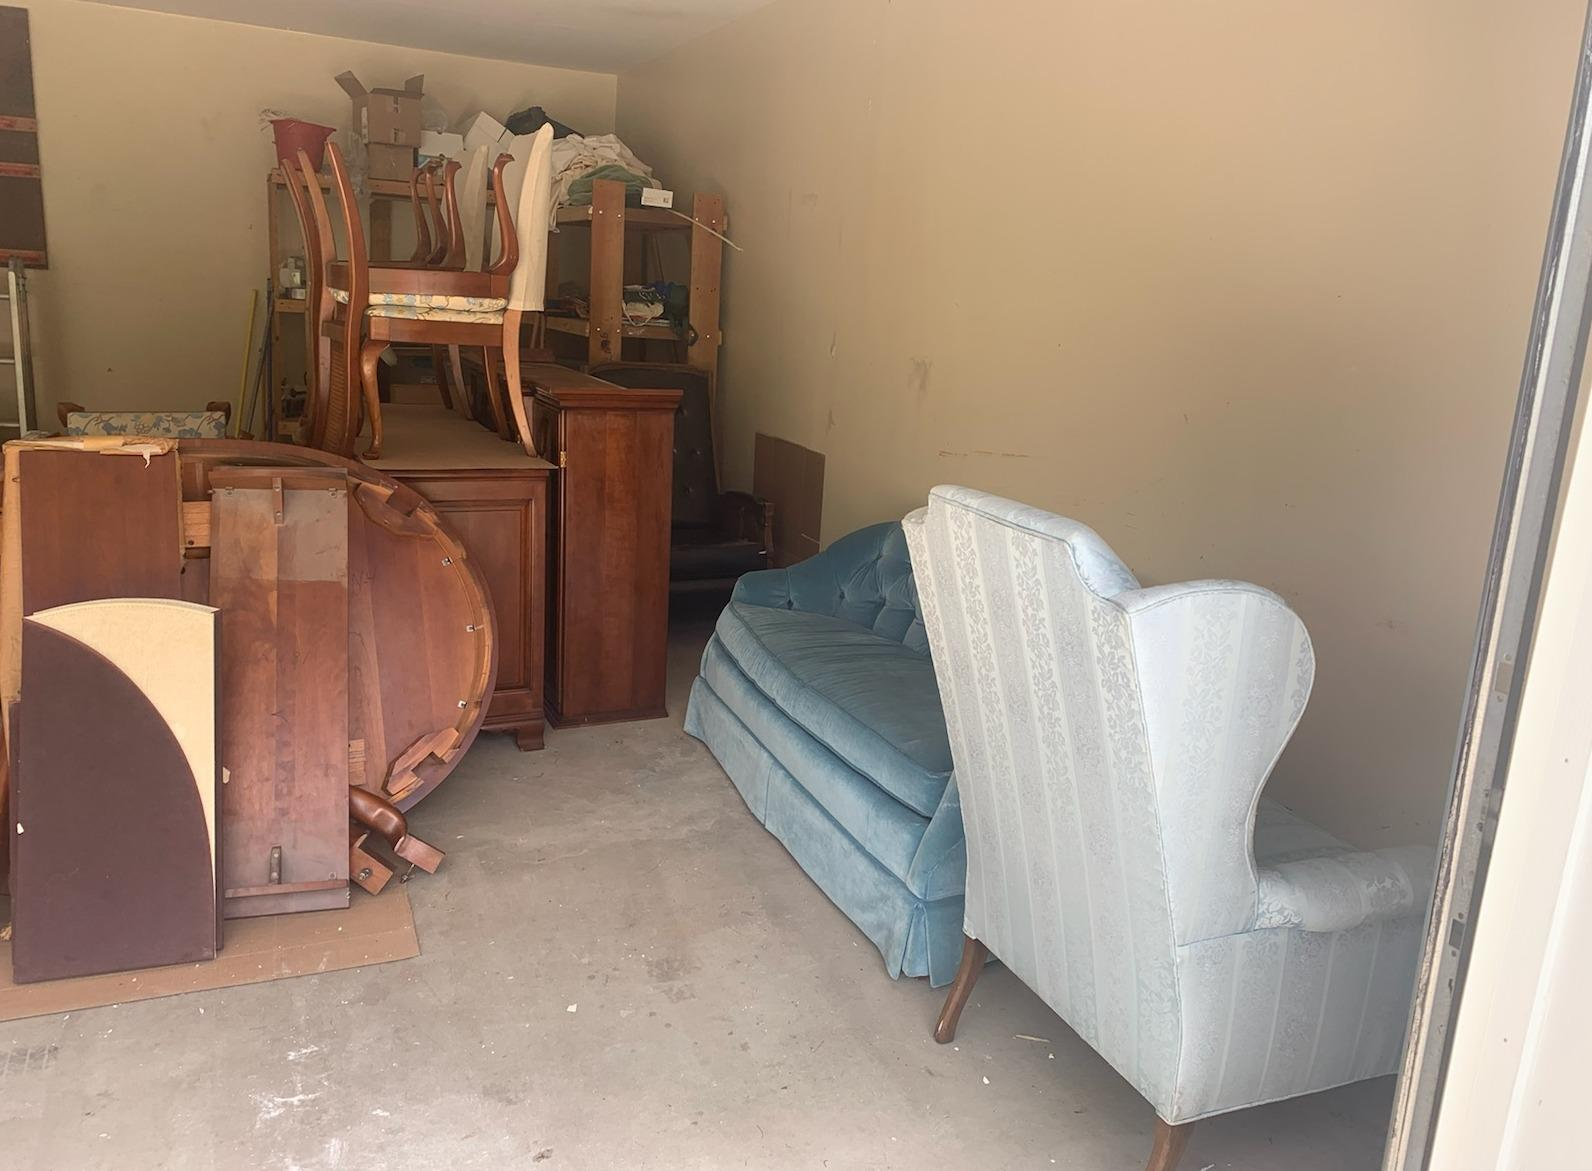 Furniture removal in Monroe Township, NJ - Before Photo